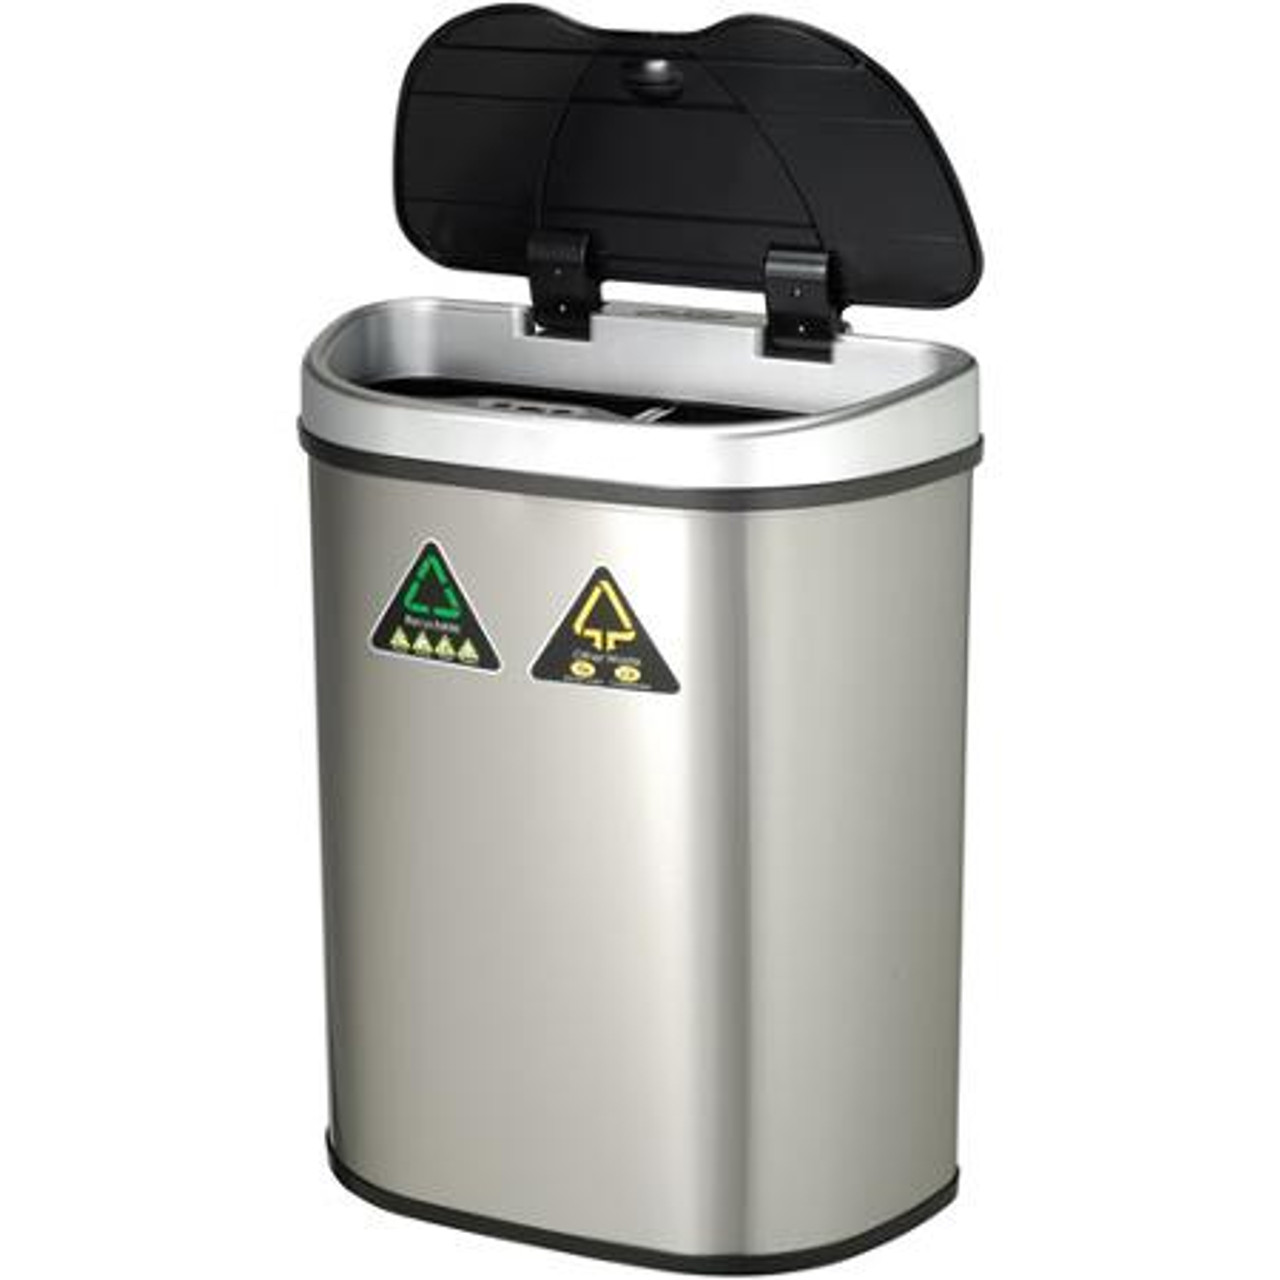 18 Gallon Touchless Automatic Kitchen Recycling Trash Can DZT-70-11R Open